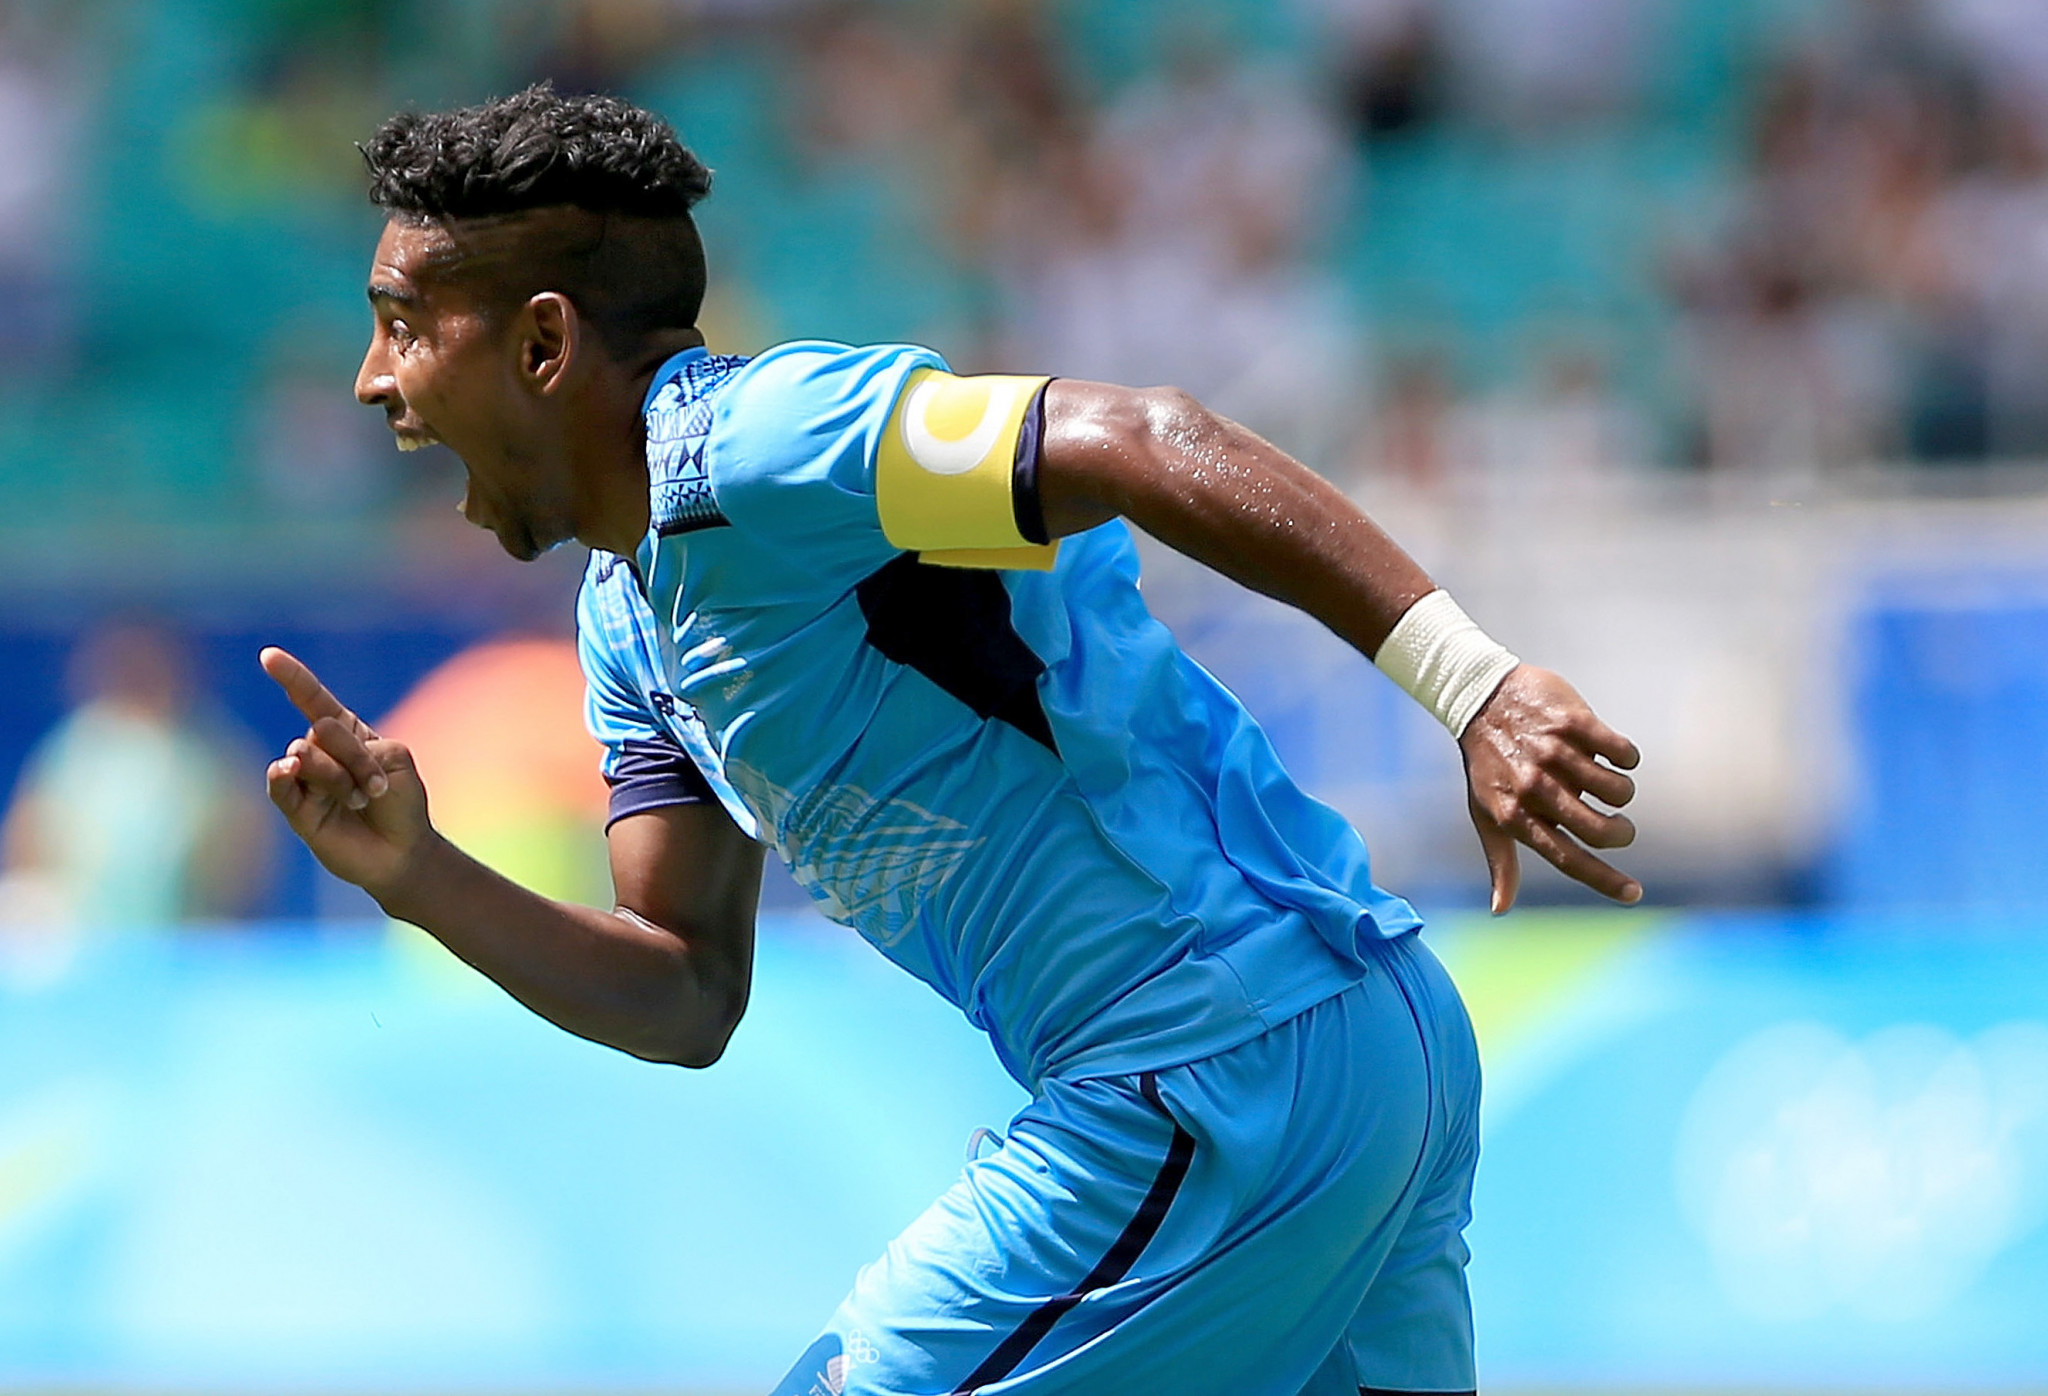 Roy Krishna captained Fiji's men's football team at the Rio 2016 Olympics, scoring the side's only goal ©Getty Images